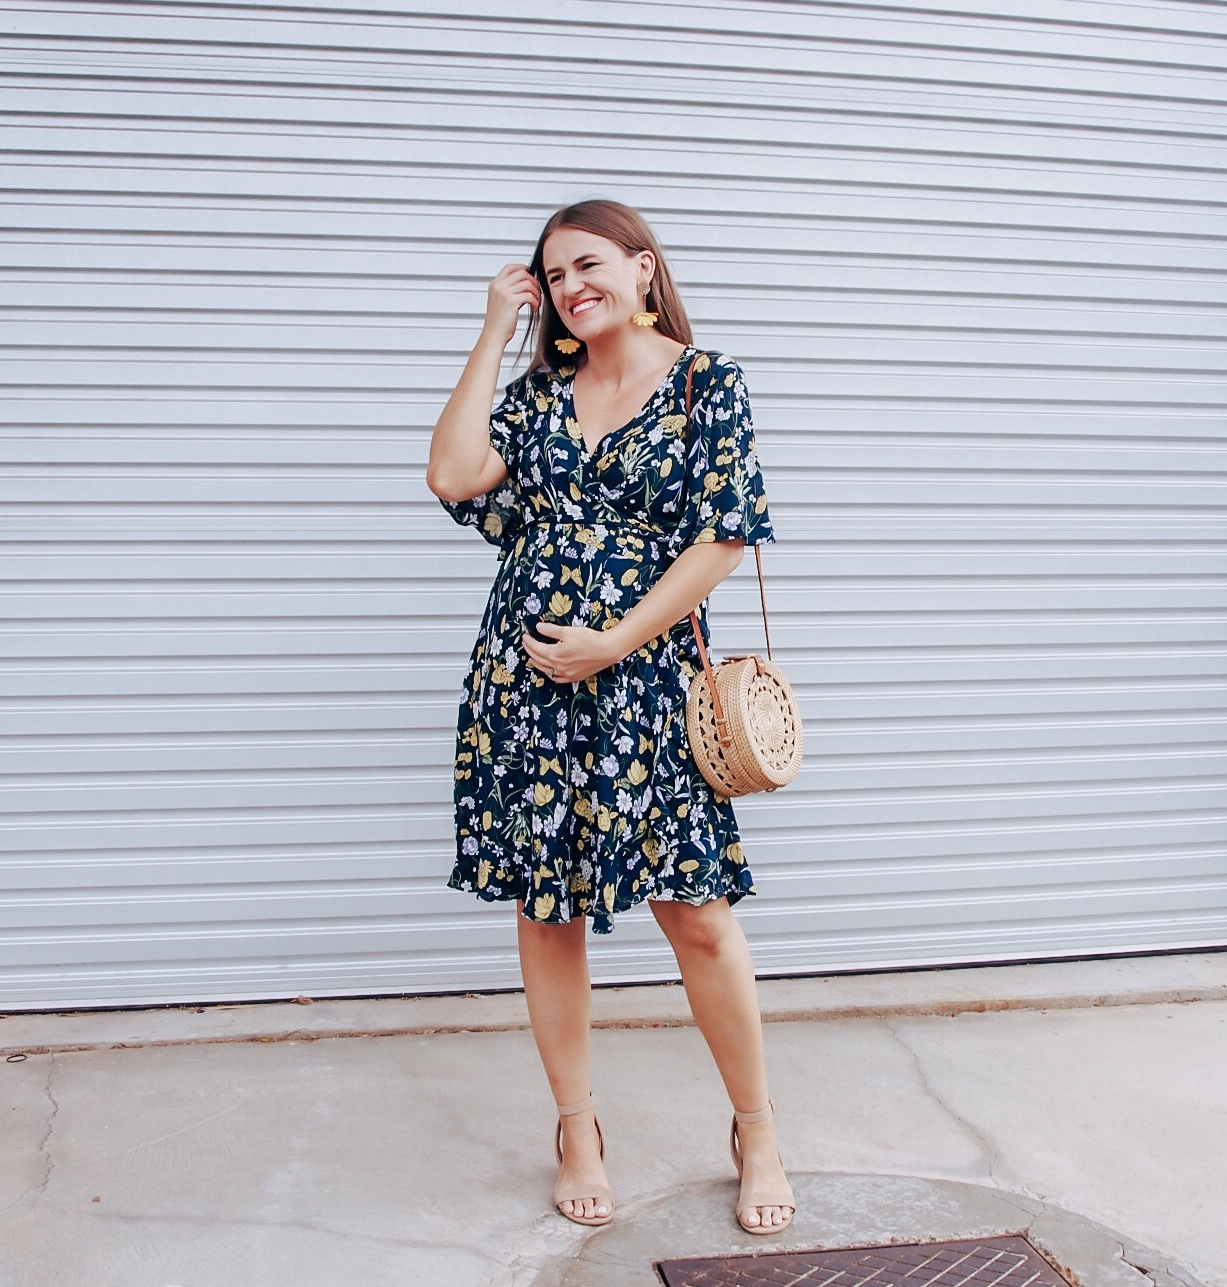 a779d8a31333a The Maternity And Nursing Label You Need to Know: Maive and Bo ...